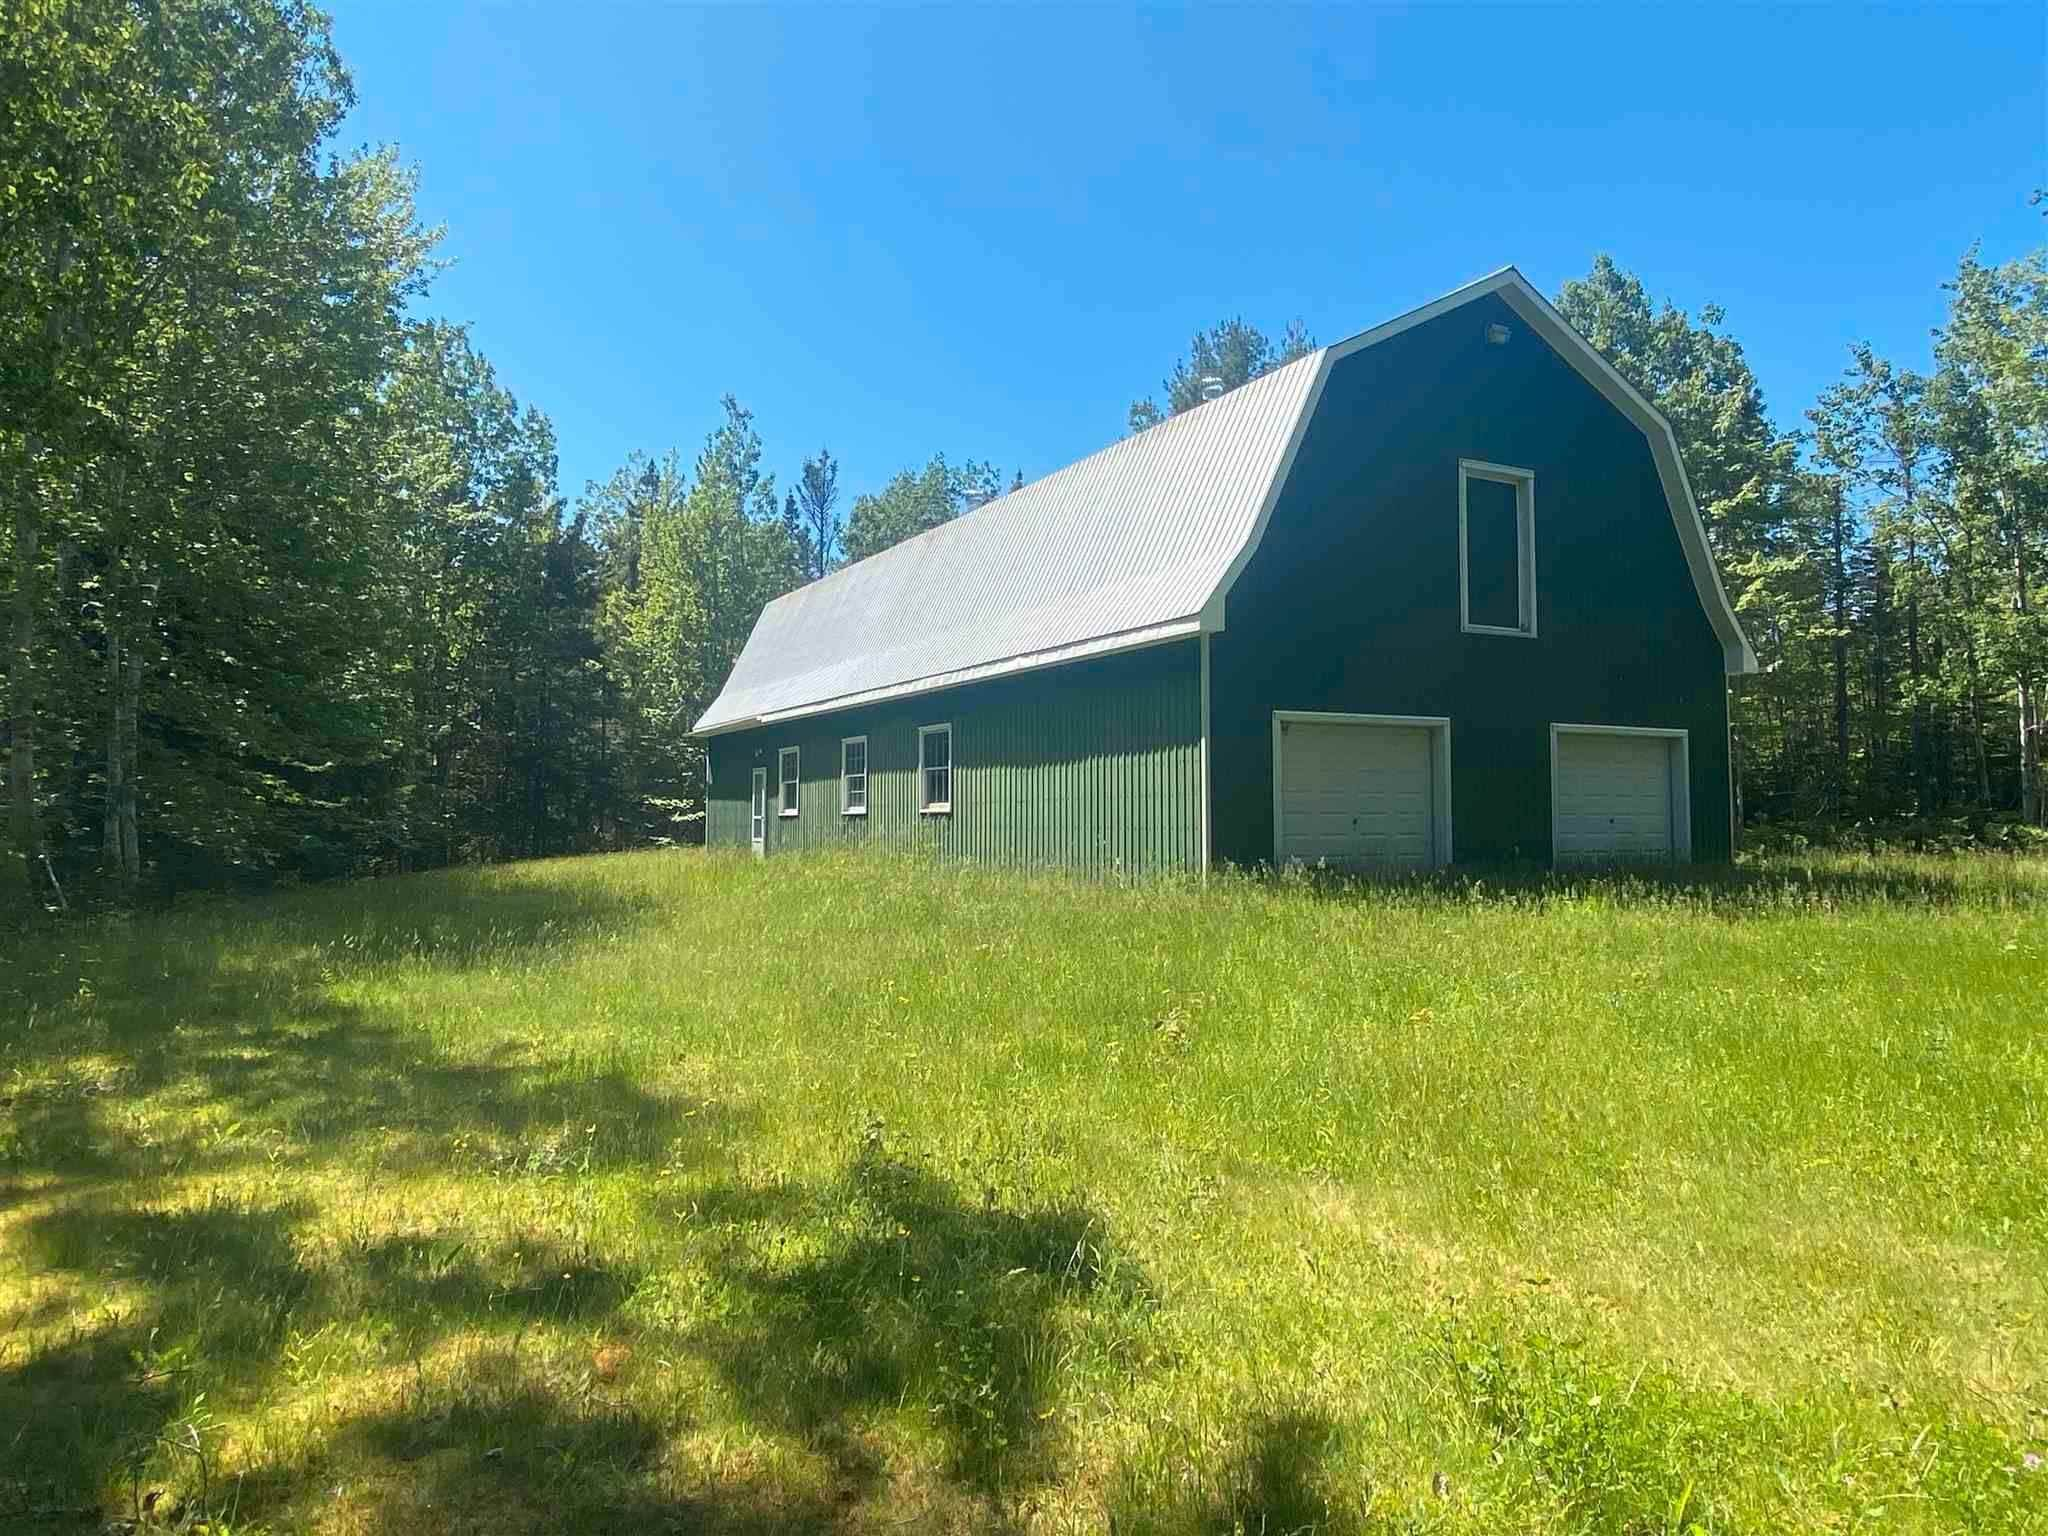 Main Photo: 32 R.Grant Road in Caribou River: 108-Rural Pictou County Residential for sale (Northern Region)  : MLS®# 202118968